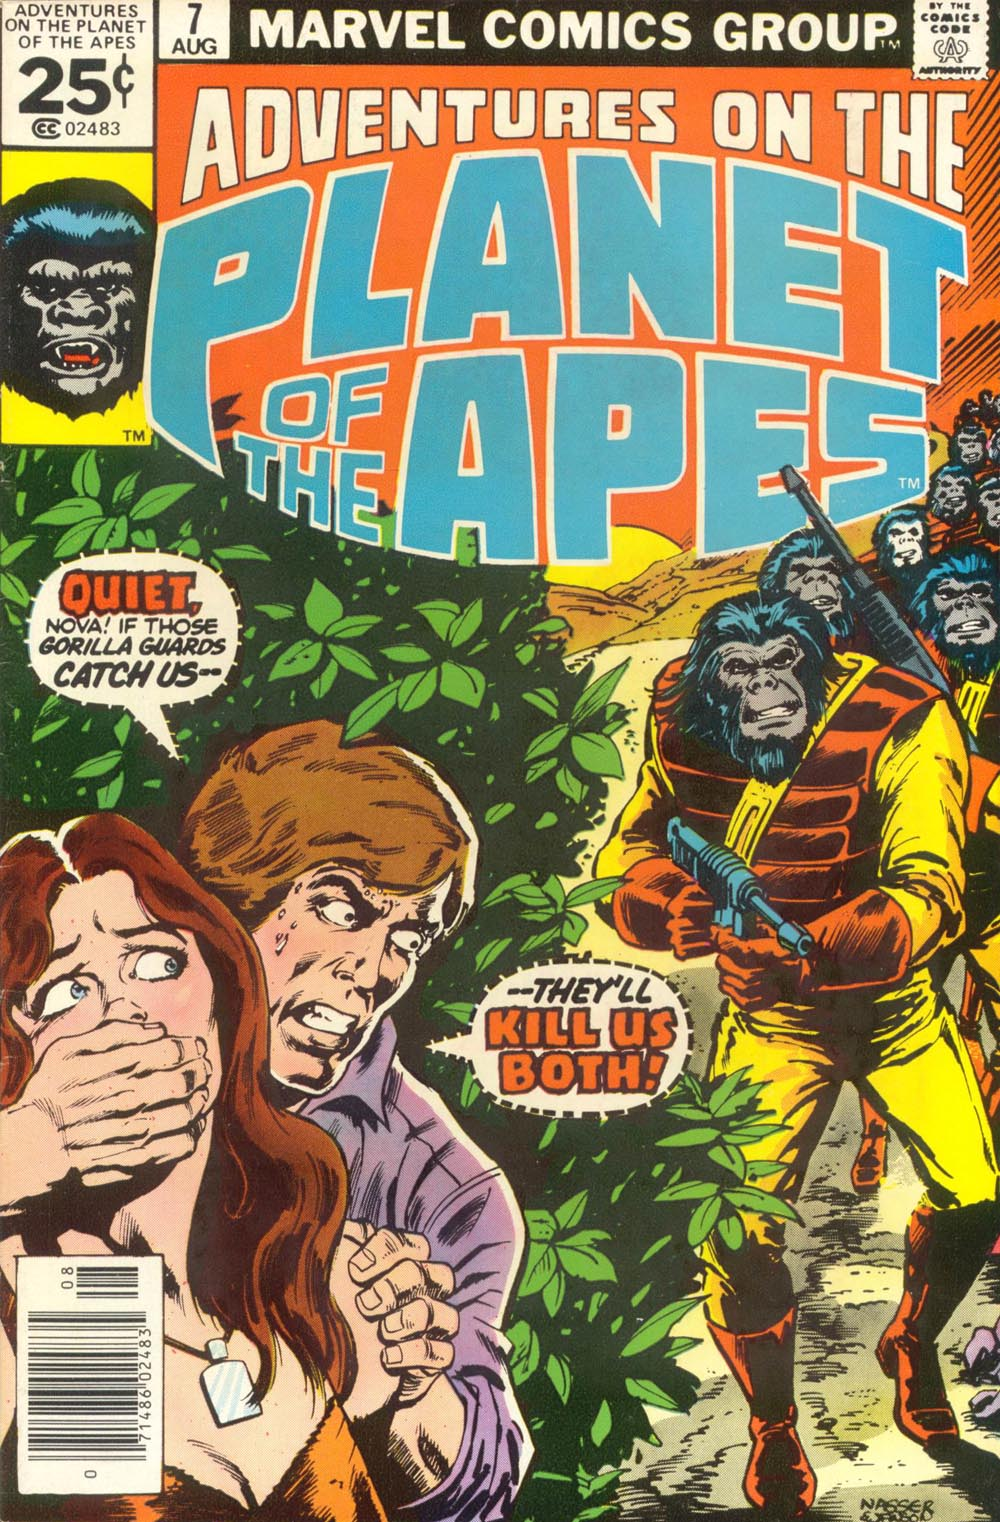 Adventures on the Planet of the Apes (1975) #7, cover penciled by Mike Nasser & inked by Klaus Janson.